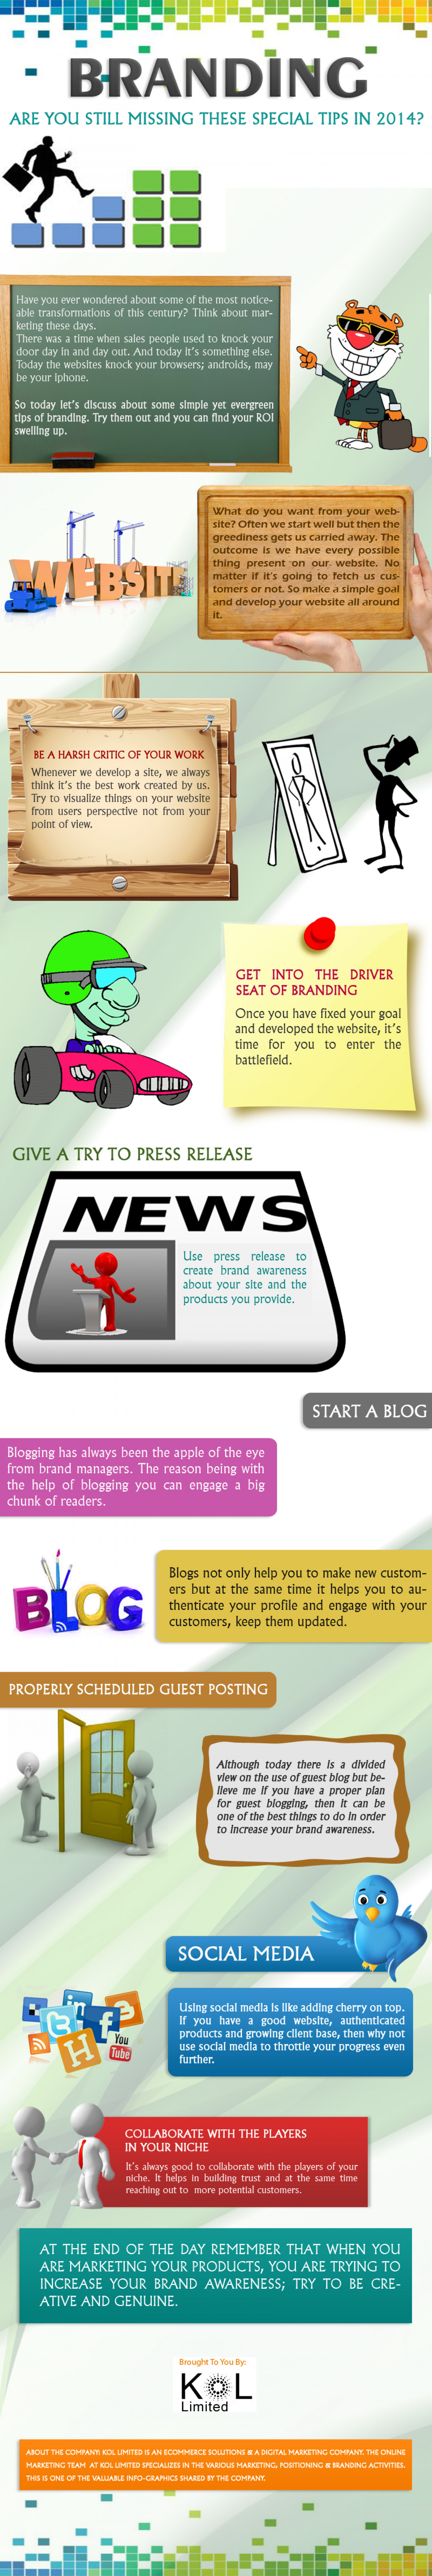 How to Promote your Brand in 2014 ? Infographic